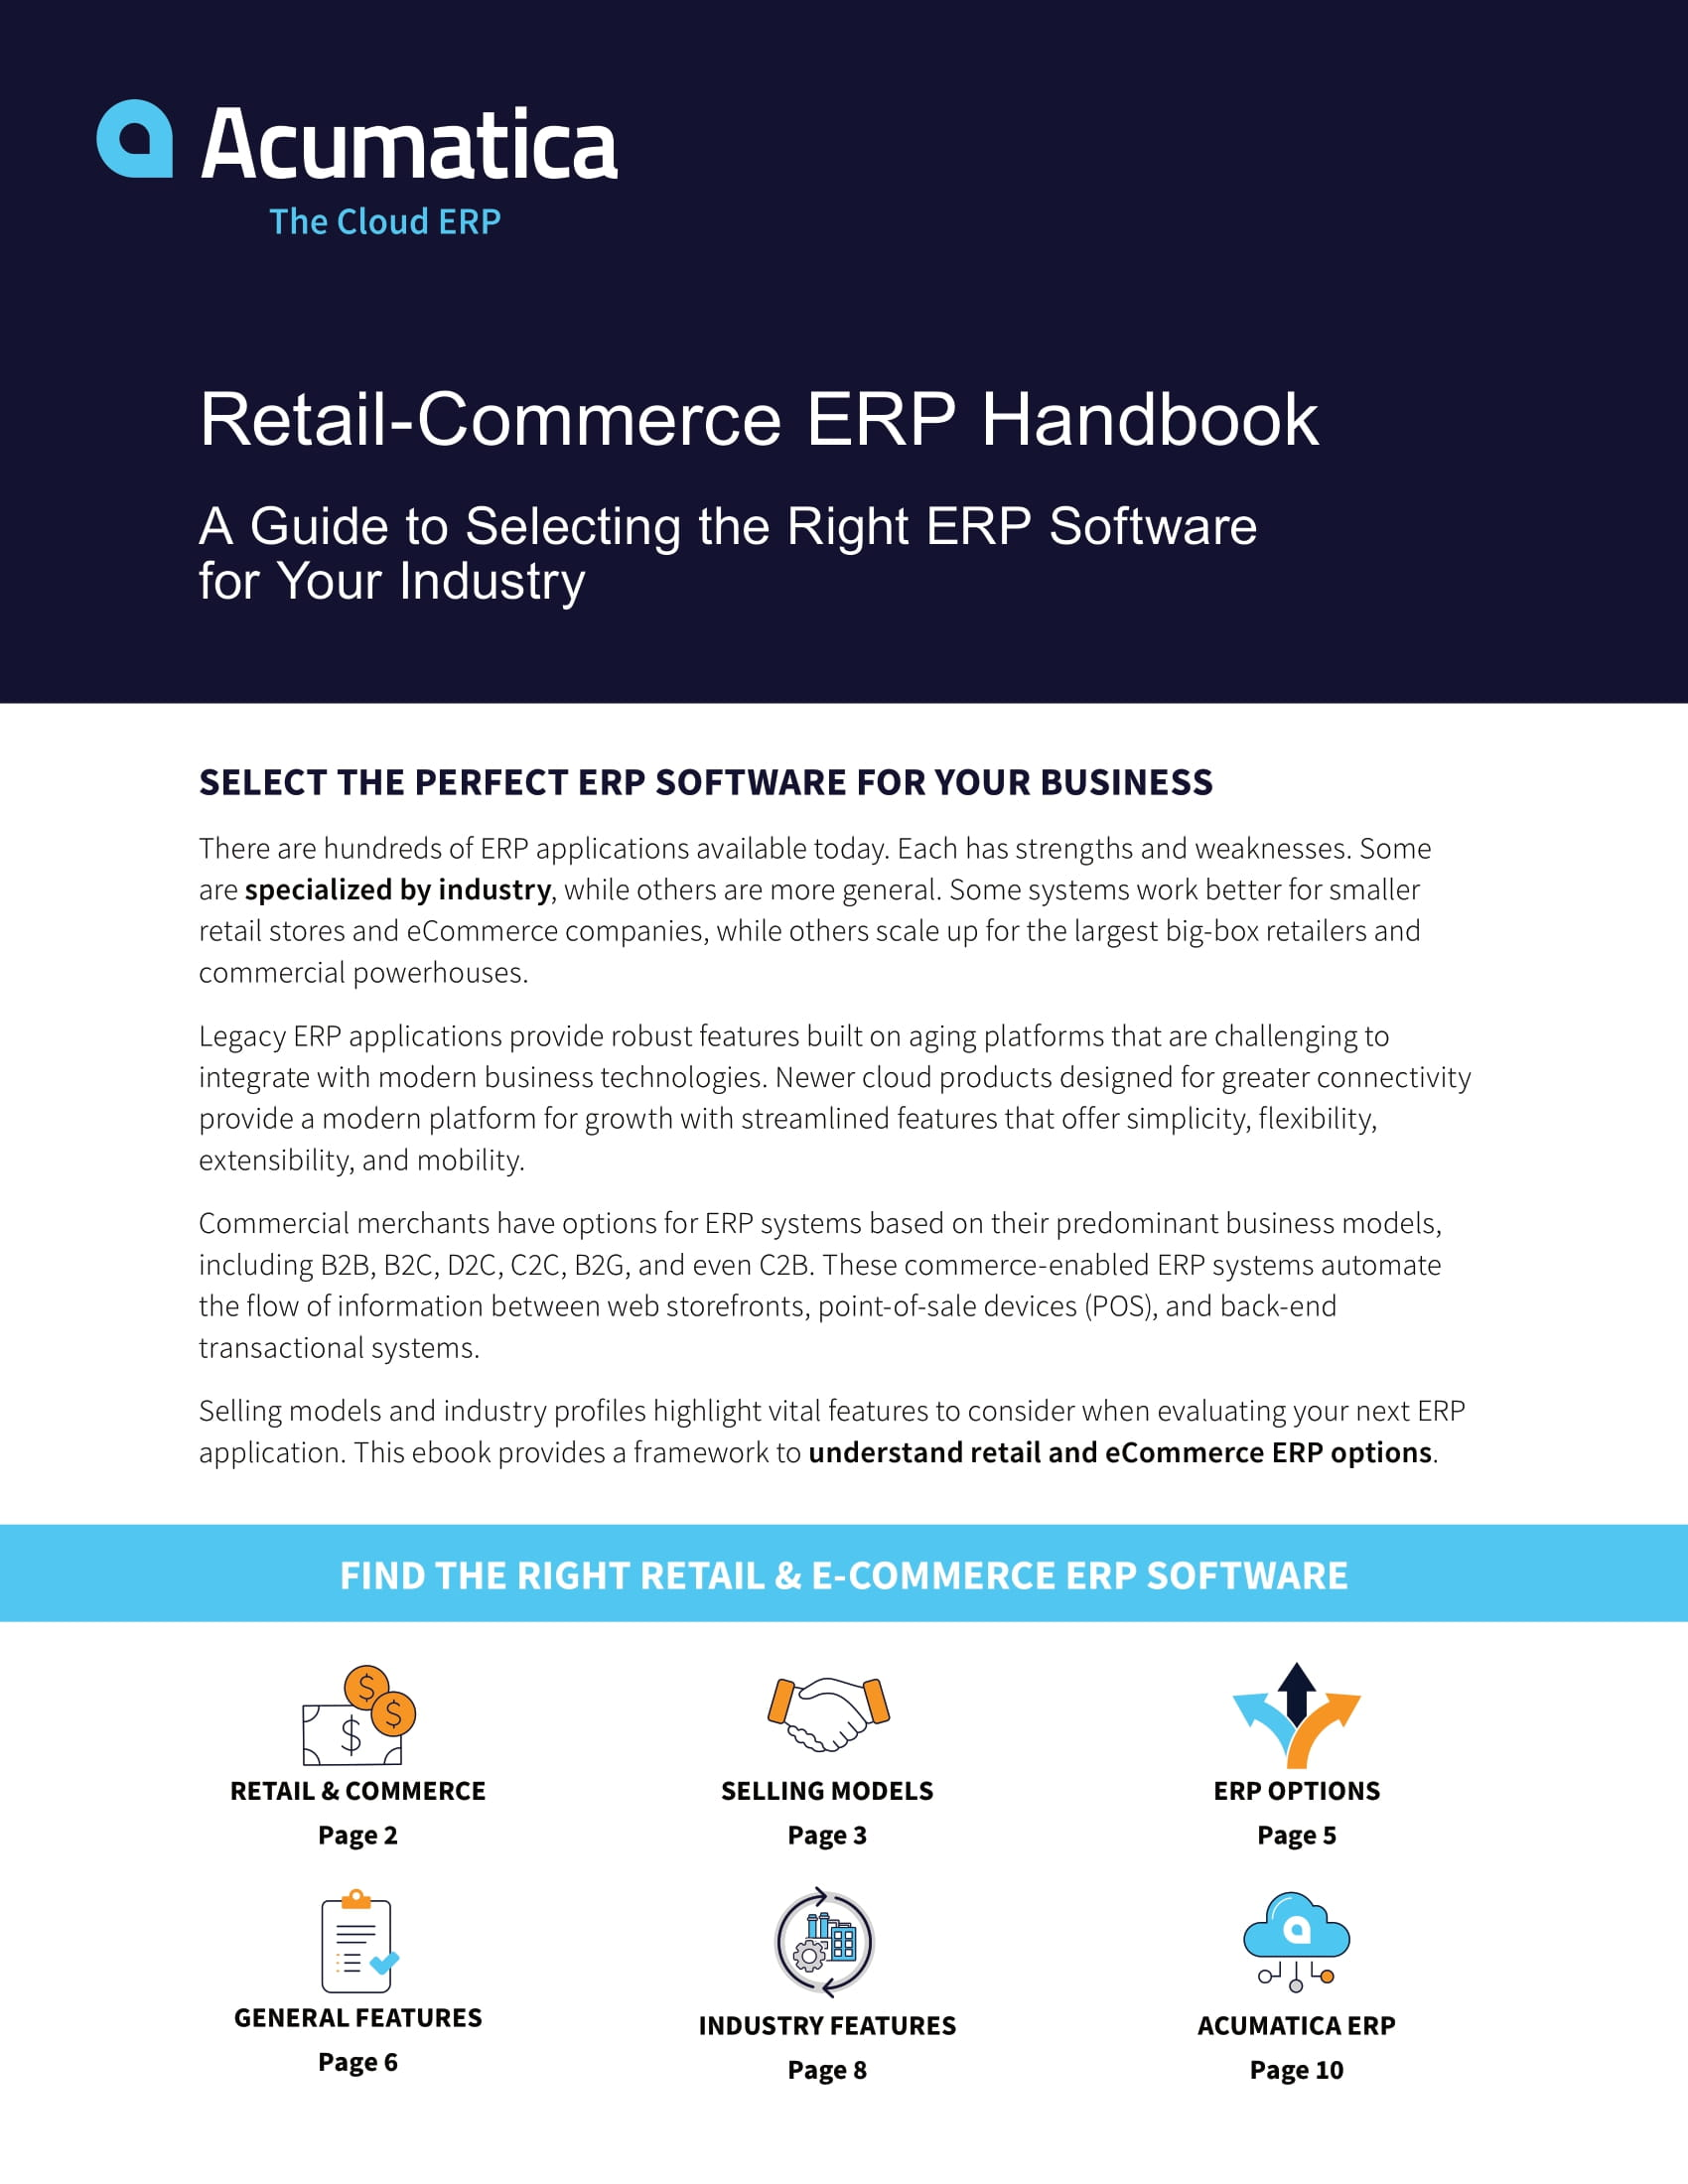 Choosing a Retail and eCommerce ERP